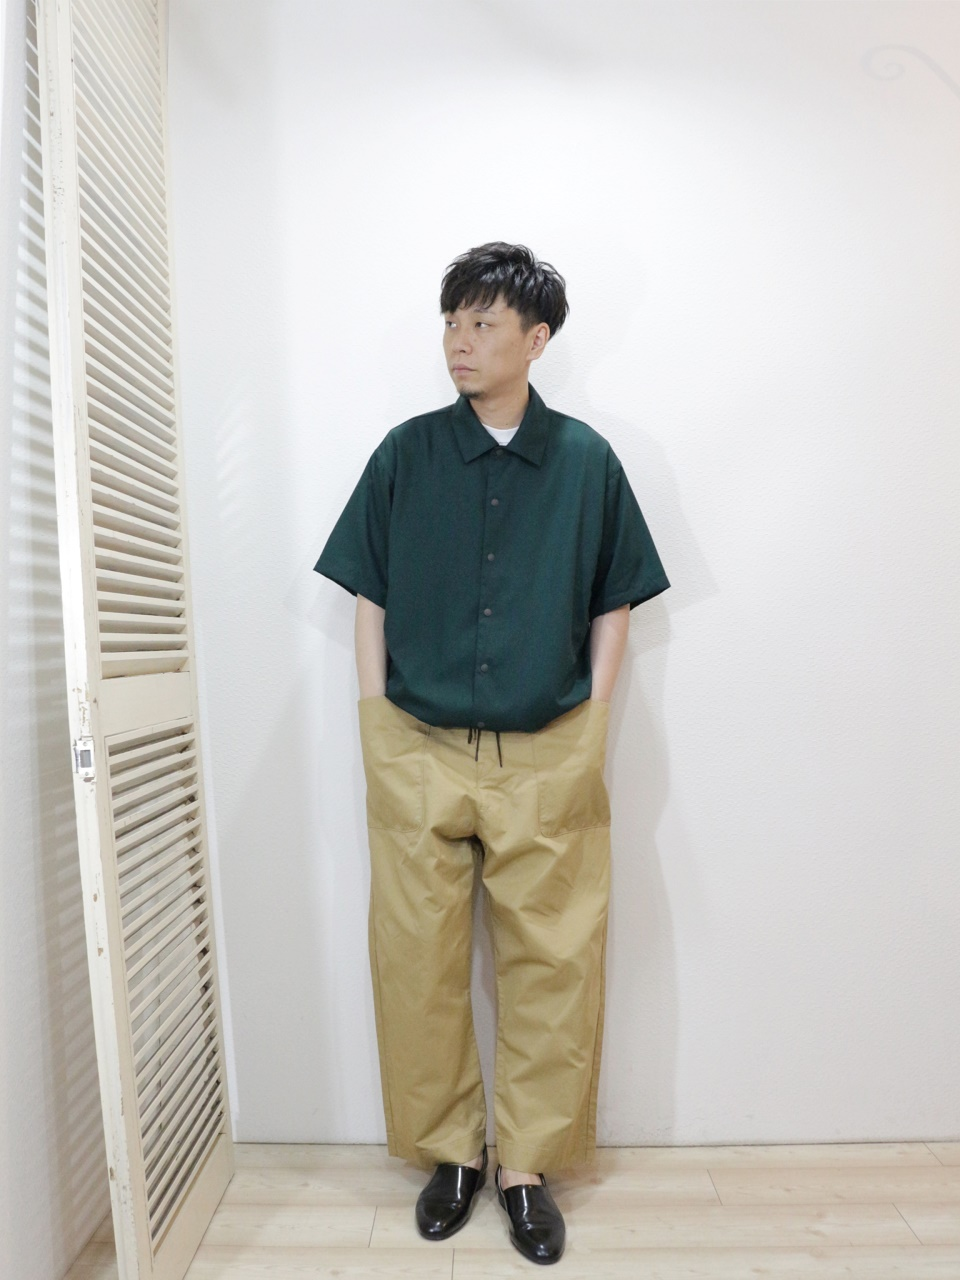 shirt/MANUAL ALPHABET-GRINFIL SPINDLE SHT(SIZE 1)tee/FRUIT OF THE LOOM-HEAVY WEIGHT TEE(SIZE S)pants/KAFIKA-FLANDERS LINEN DECK PANTS(SIZE 02)を使ったコーディネート